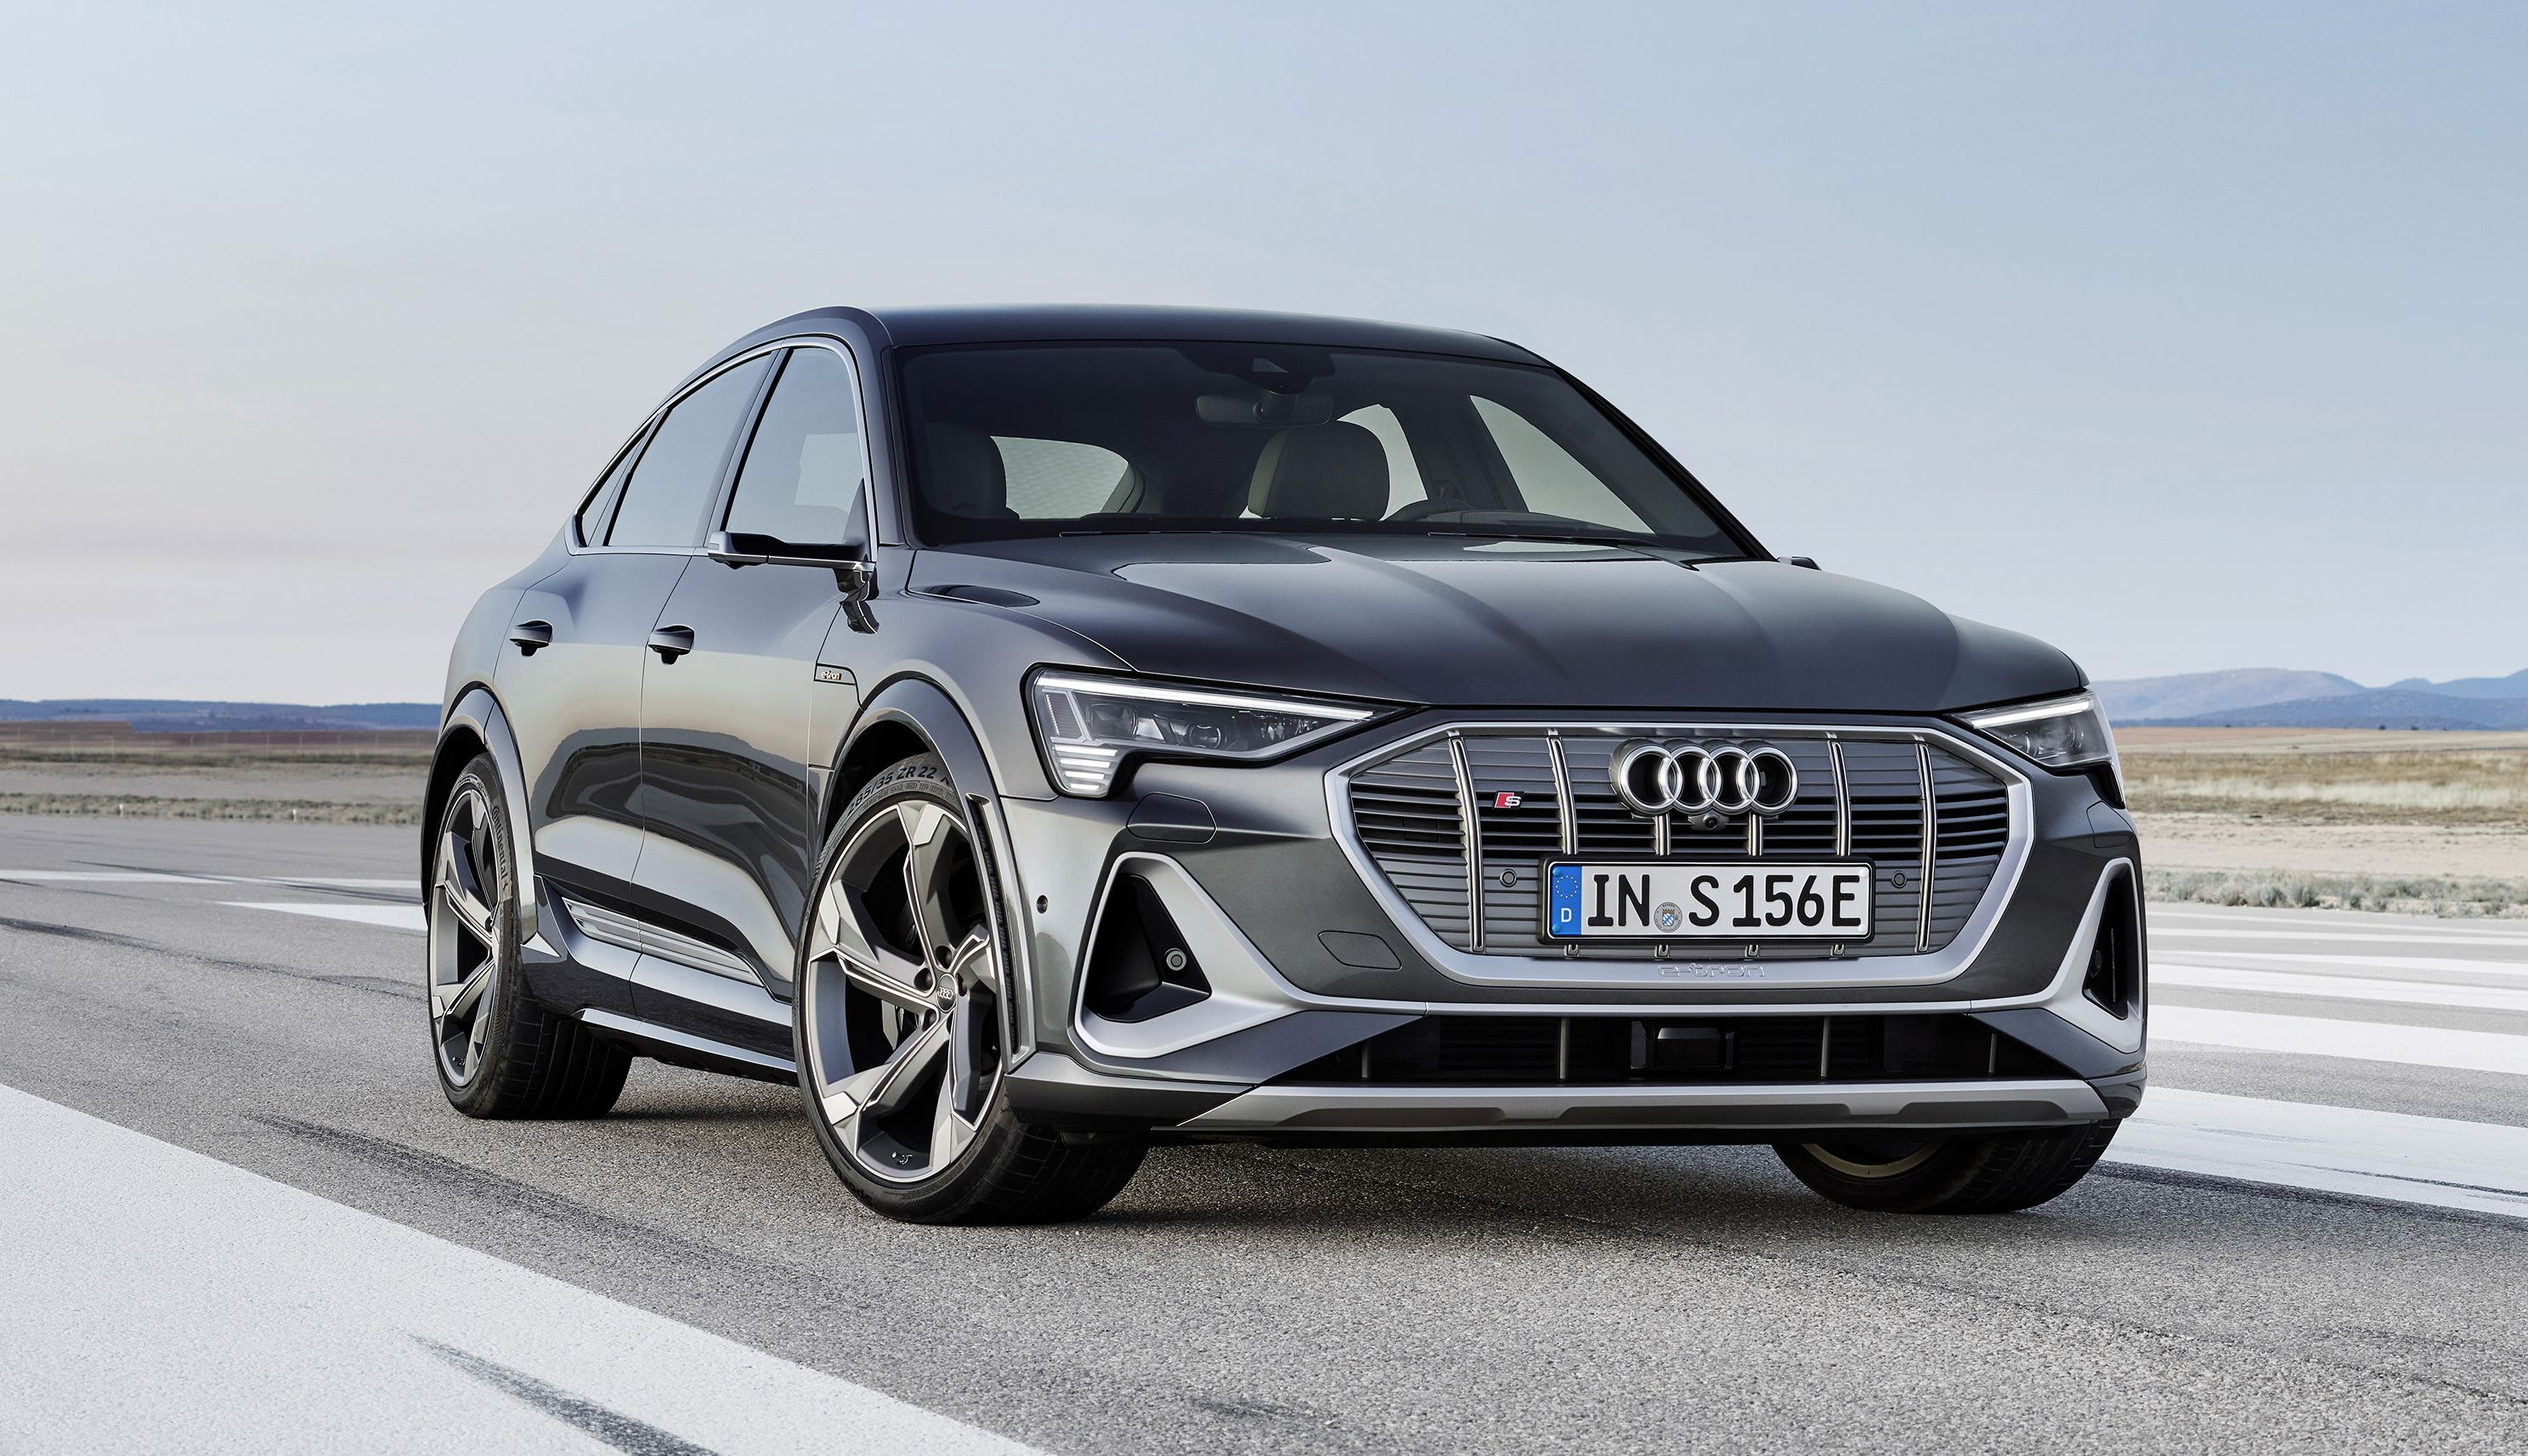 The Audi E Tron S Is Still Heavy But It Makes Up For That Weight With Ample Amounts Of Power And Torque Top Speed In 2020 Audi E Tron E Tron Audi